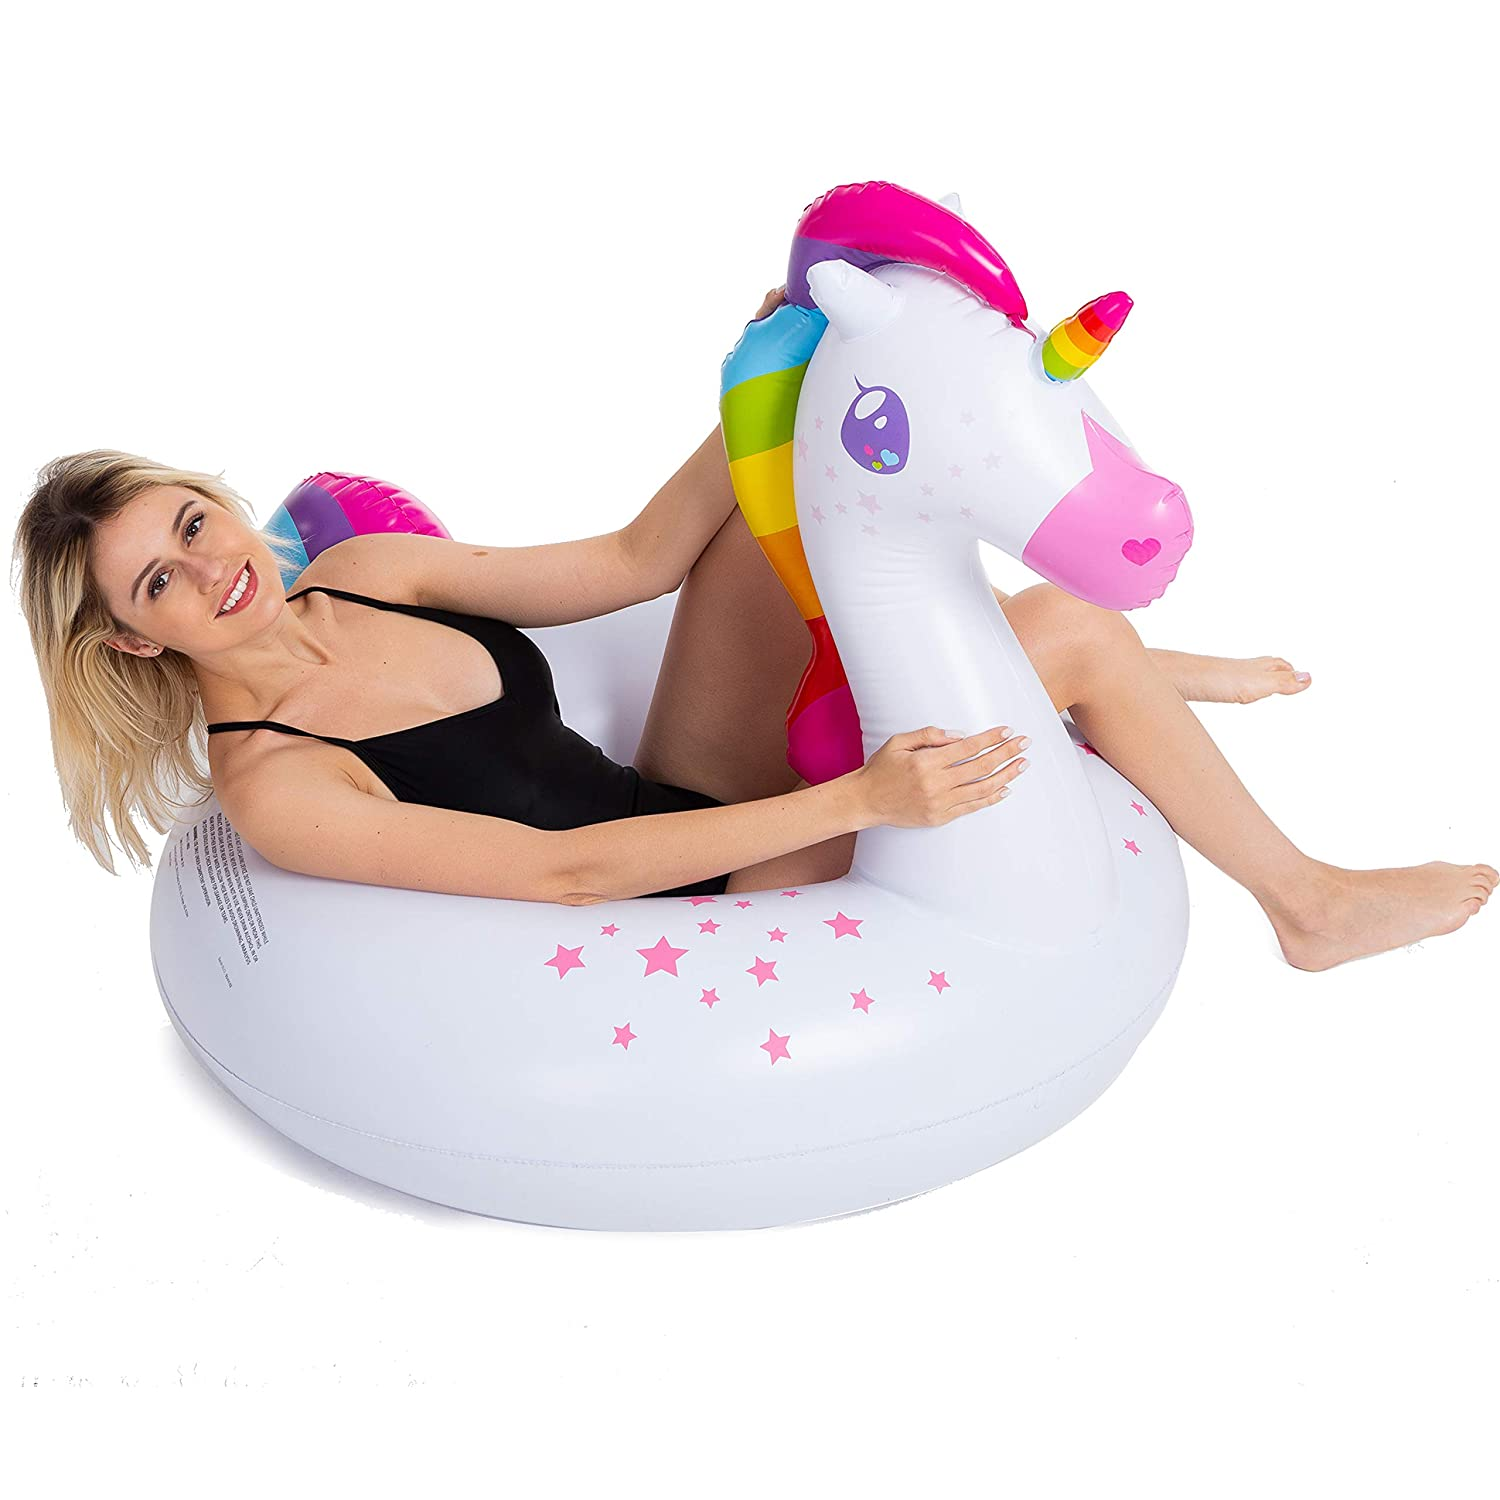 JOYIN Inflatable Flamingo and Unicorn Pool Float 2 Pack Swim Party Toys Summer Pool Raft Lounger for Adults /& Kids Fun Beach Floaties Inflates to Over 4ft. Wide